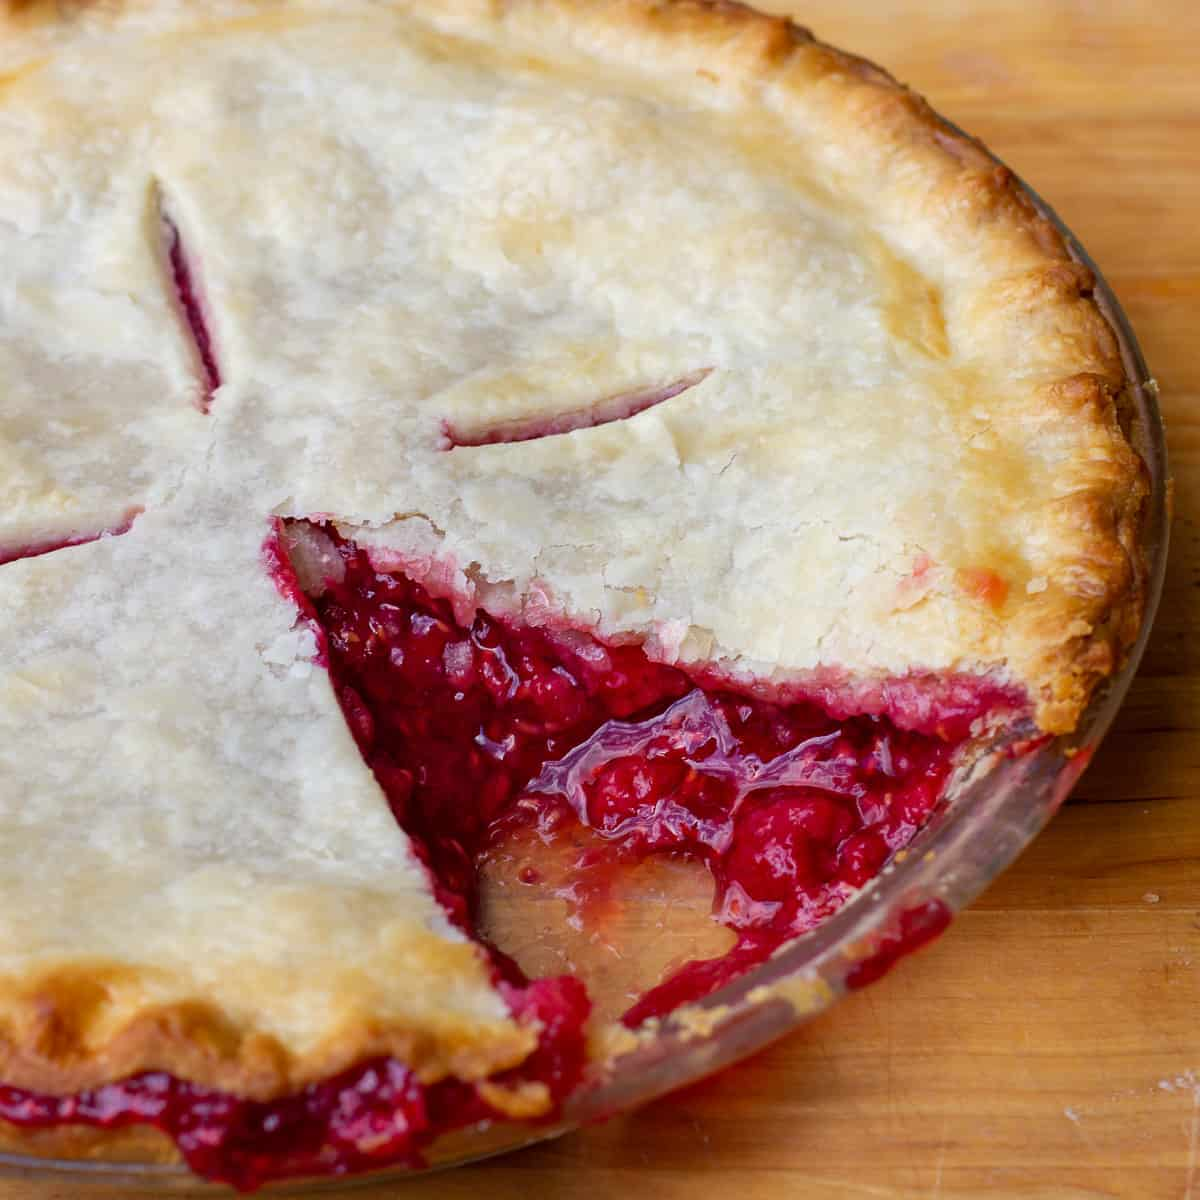 A close up picture of a pie.